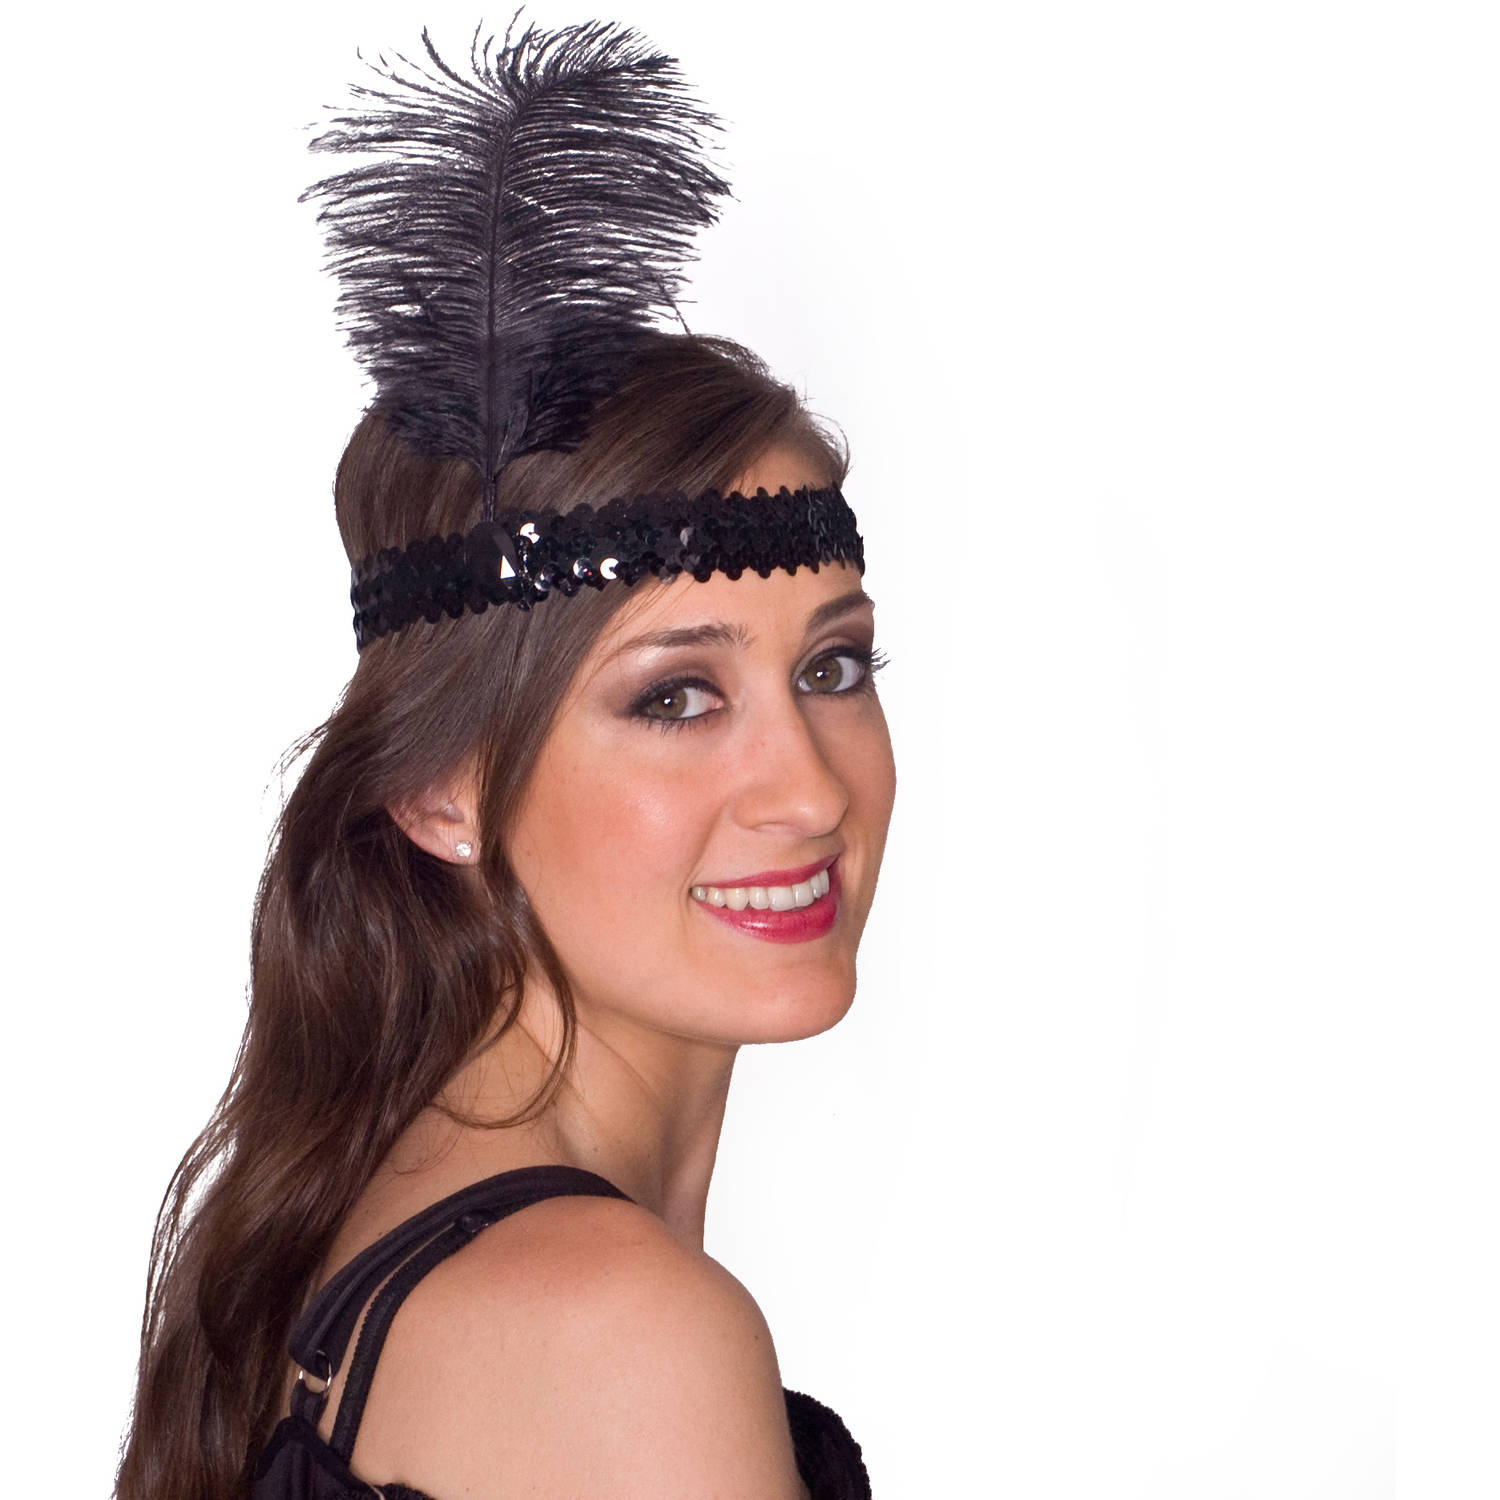 Sunnywood Black Flapper Headpiece